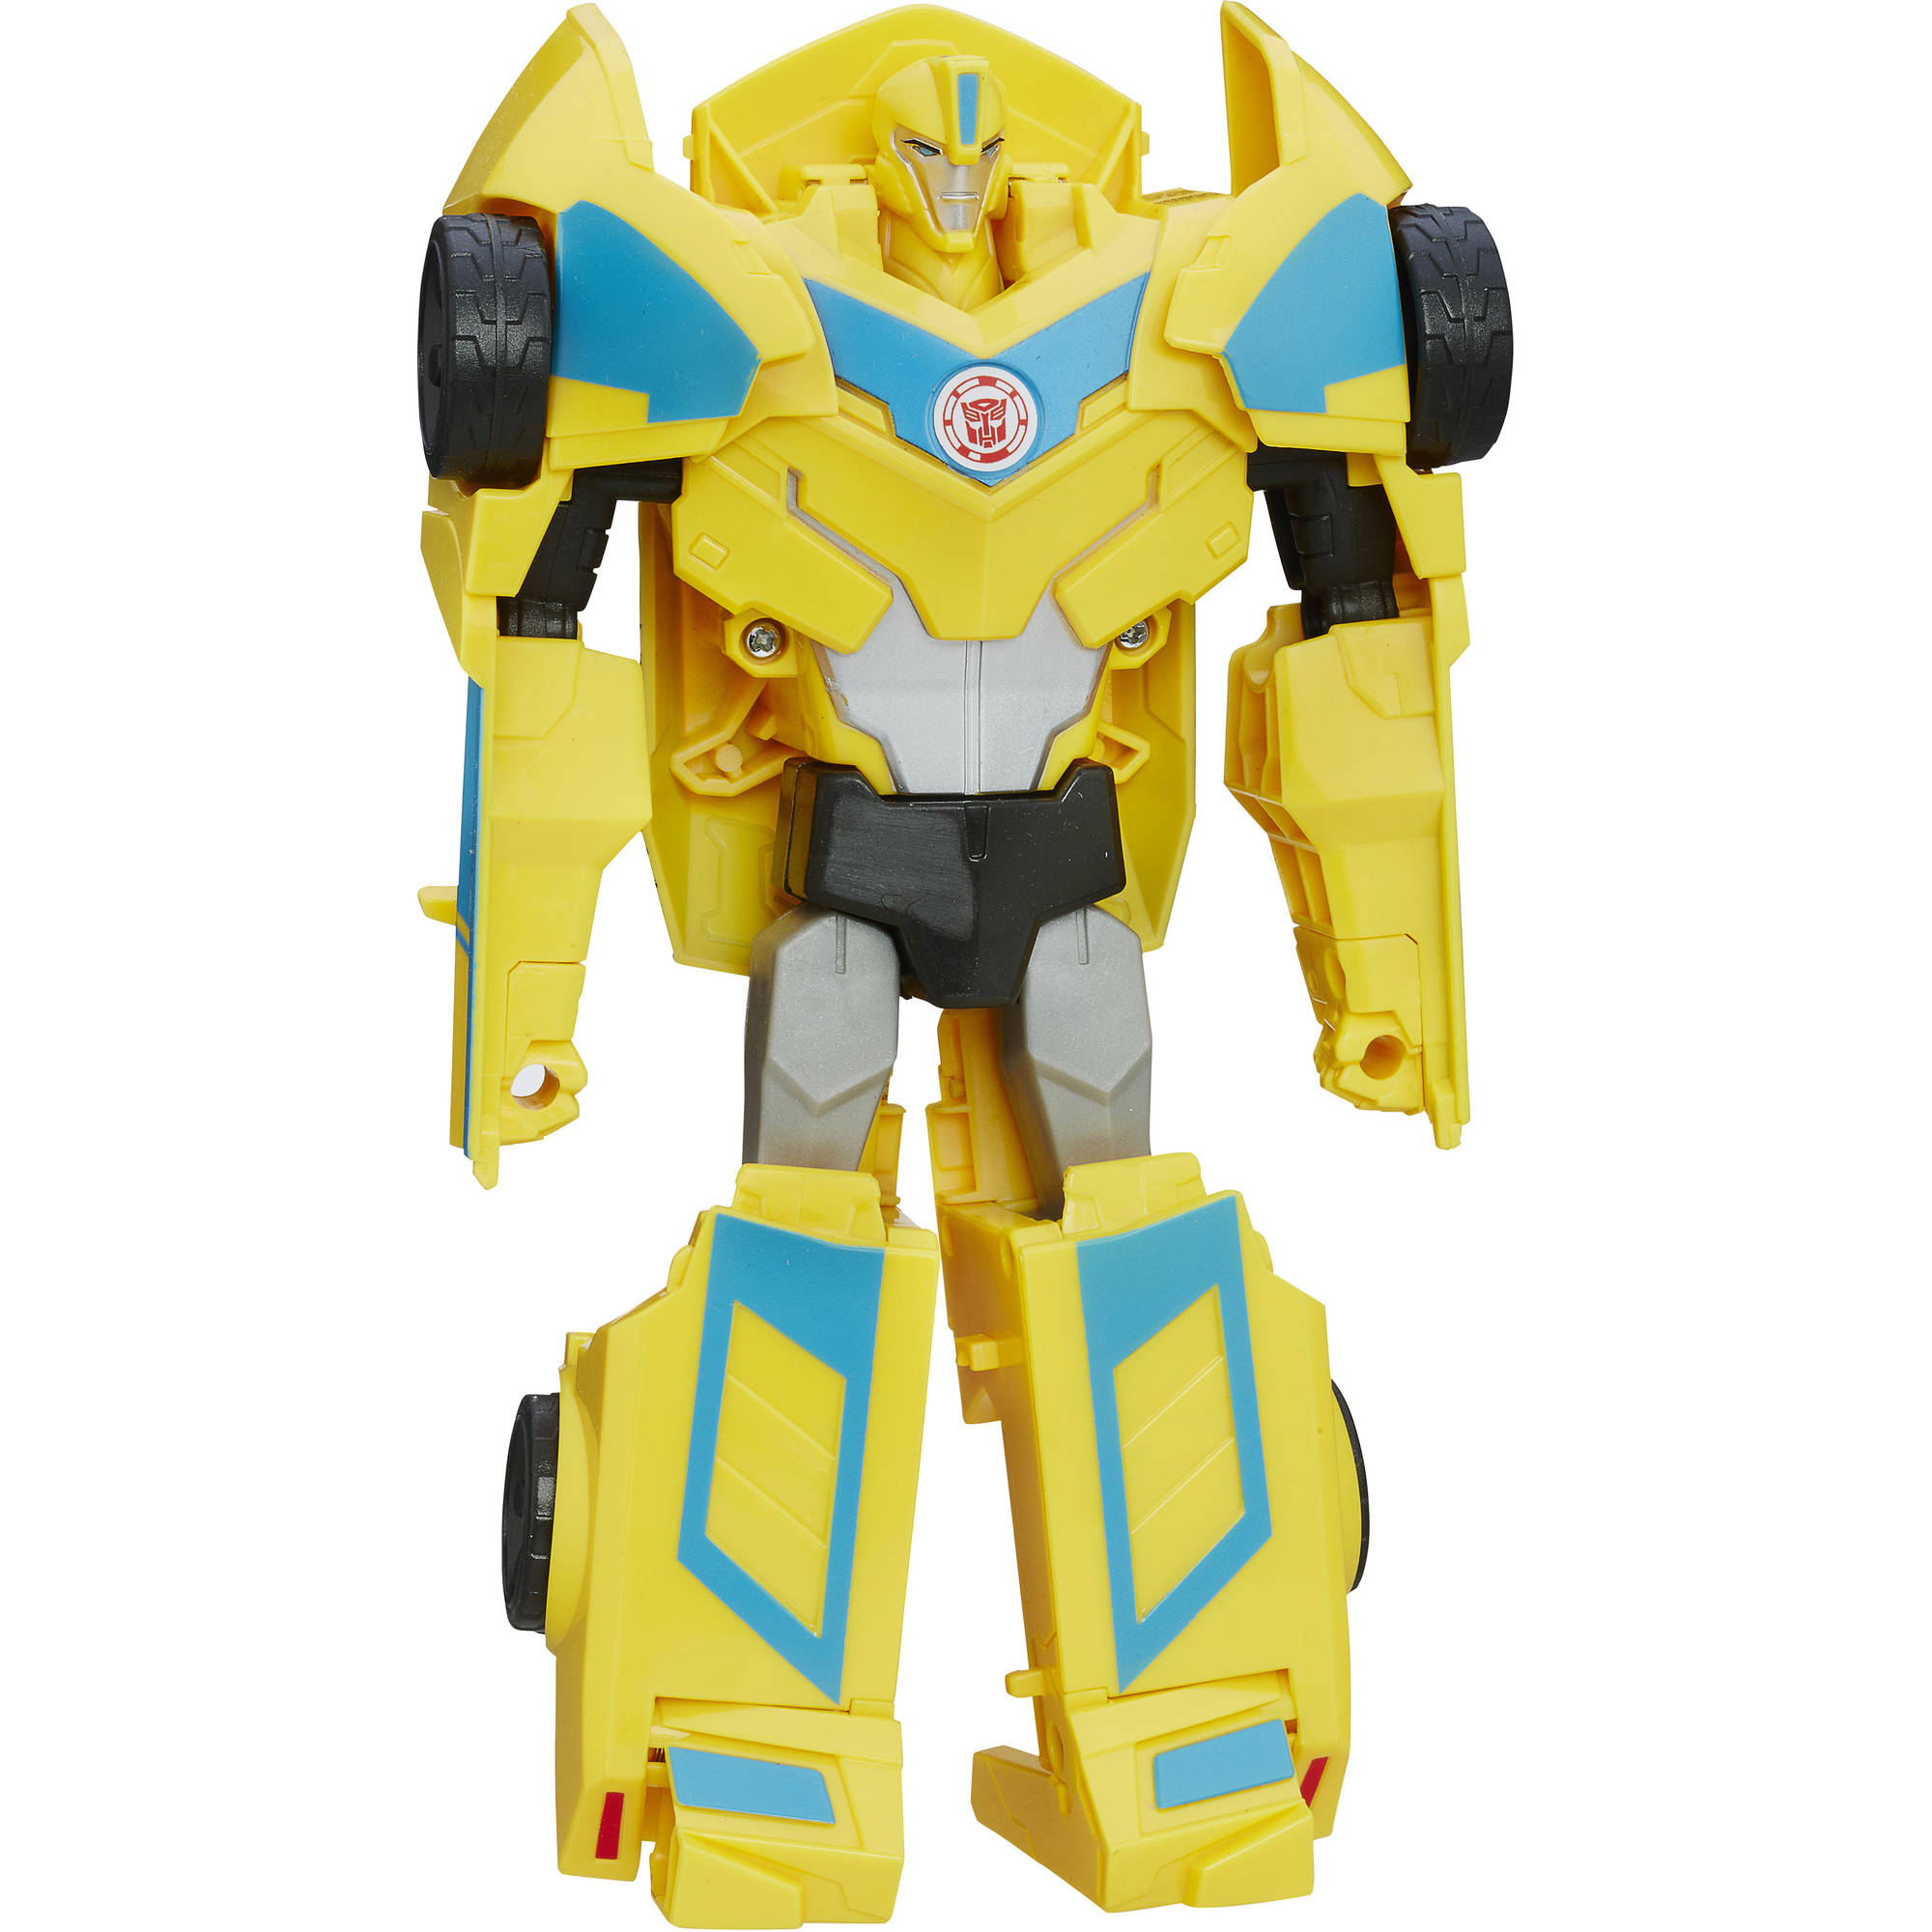 Transformers: Robots in Disguise 3-Step Changers Energon Boost Bumblebee by GFT Vietnam Company Limited